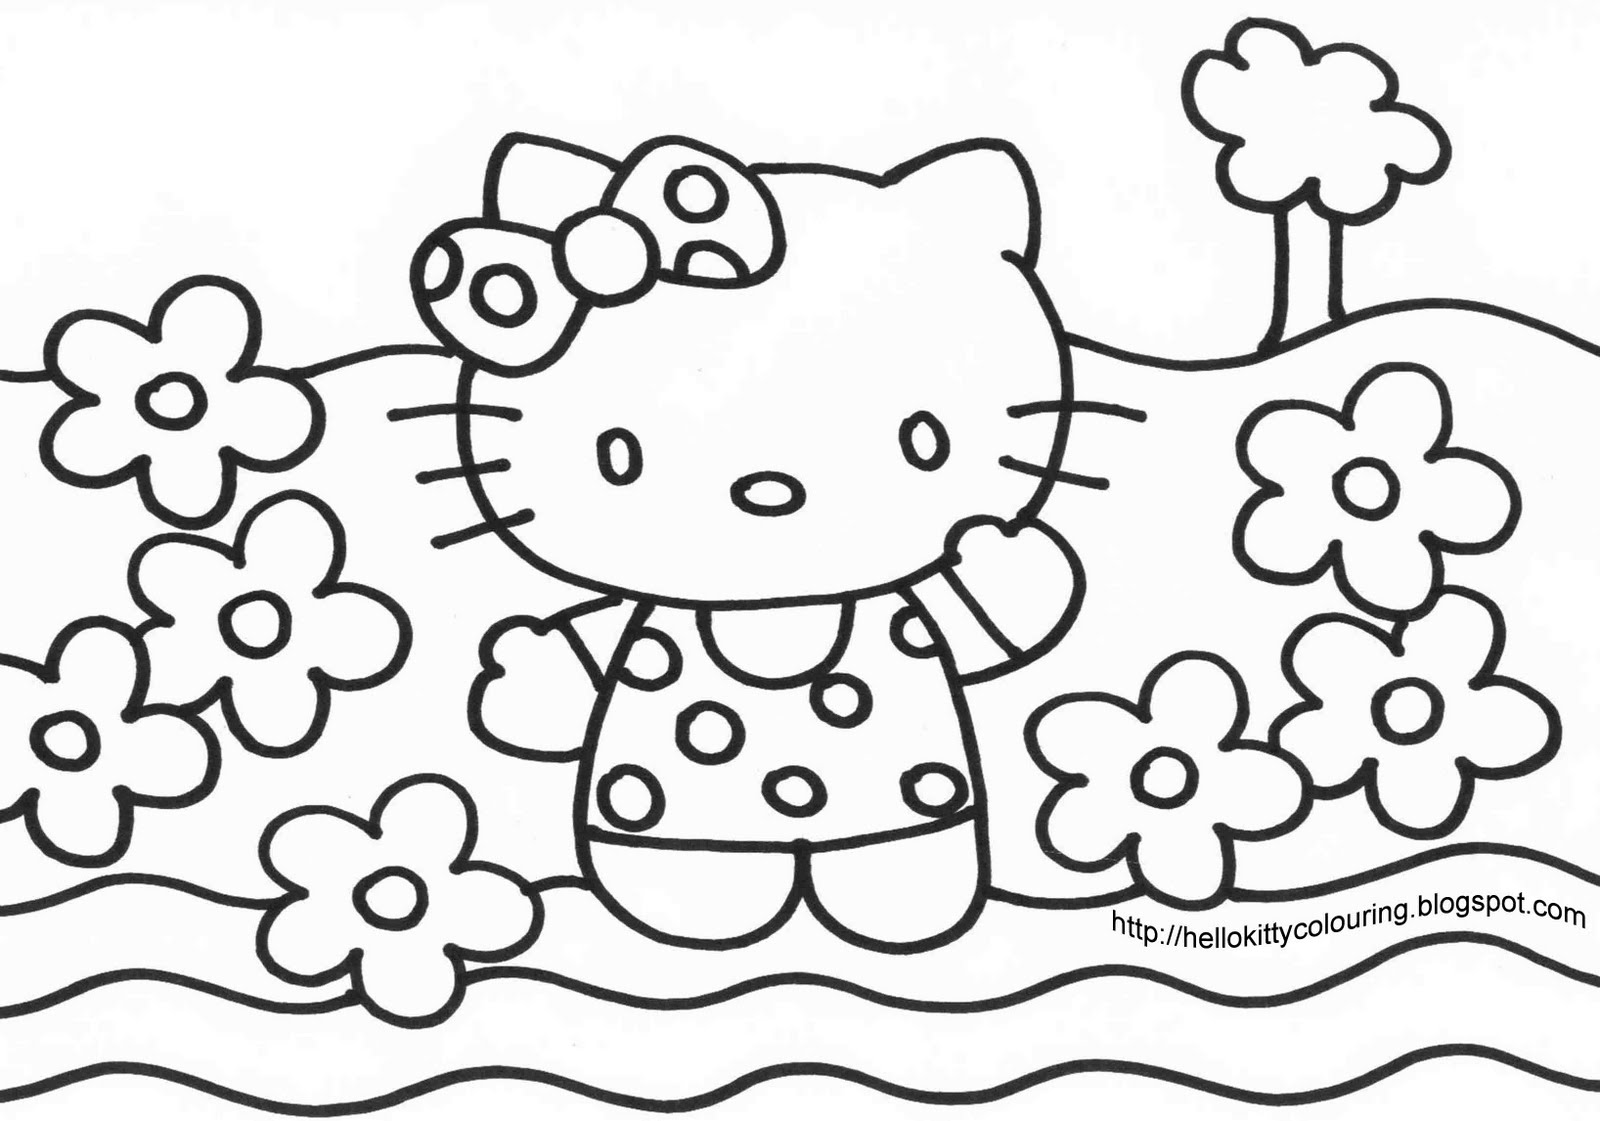 Tout les coloriage hello kitty a imprimer gratuit - Coloriage hello kitty a colorier ...